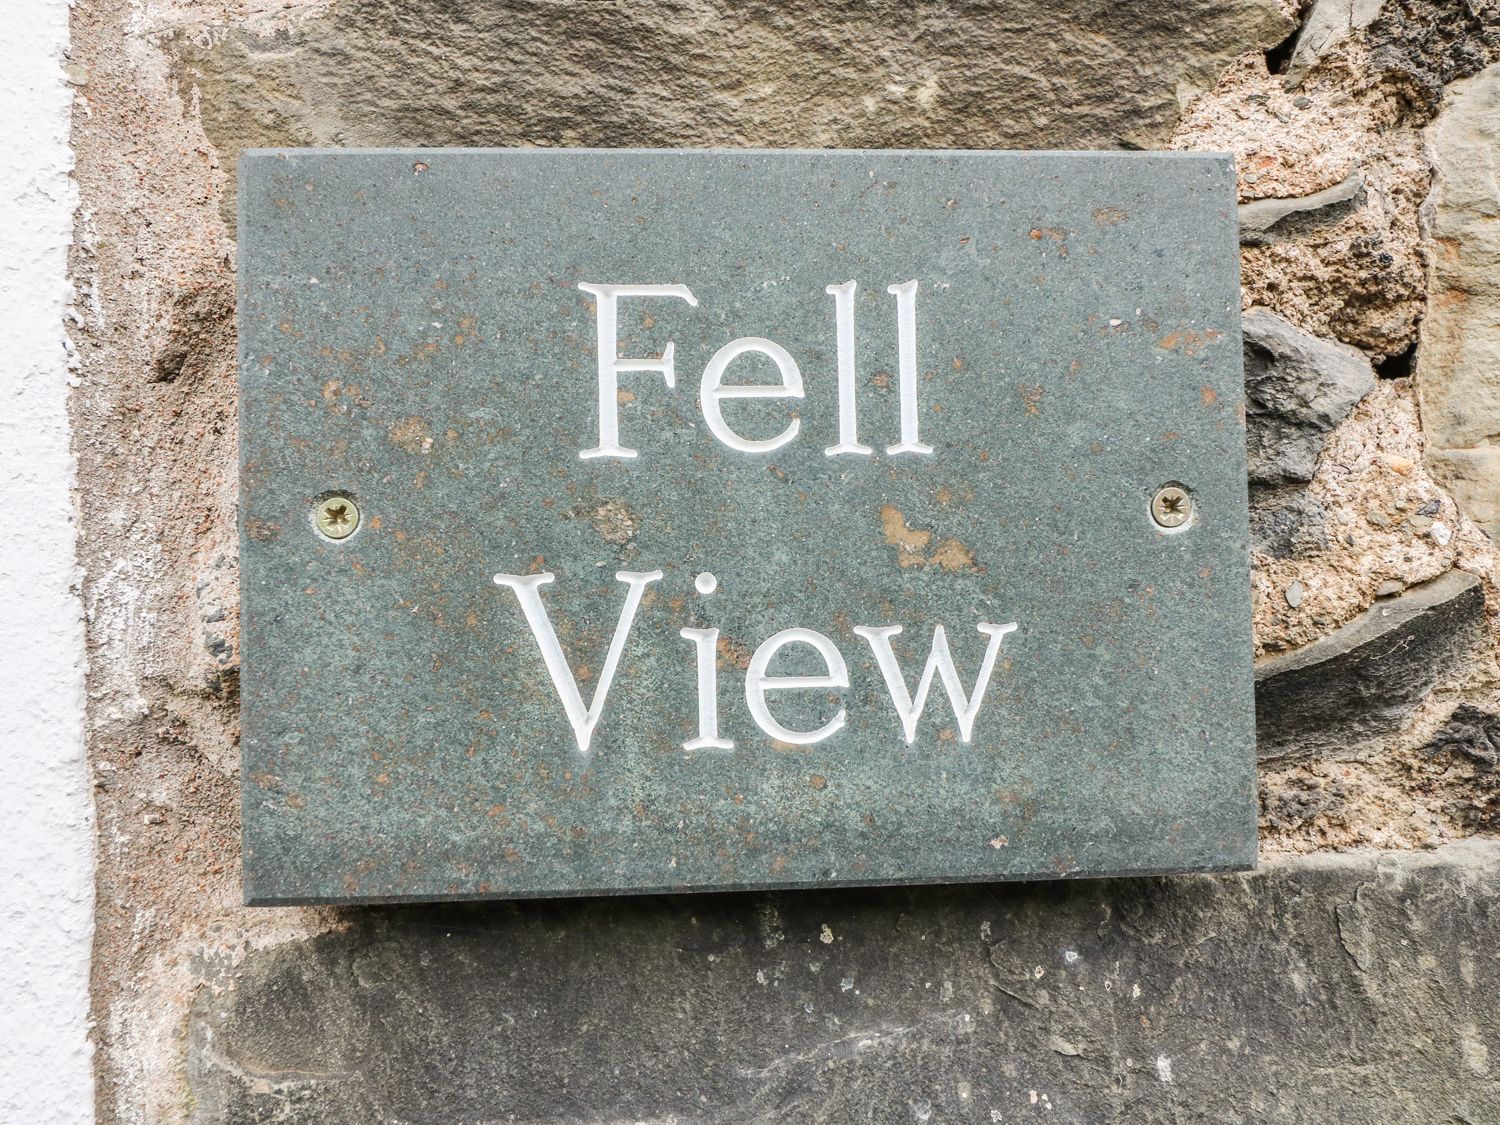 Fell View